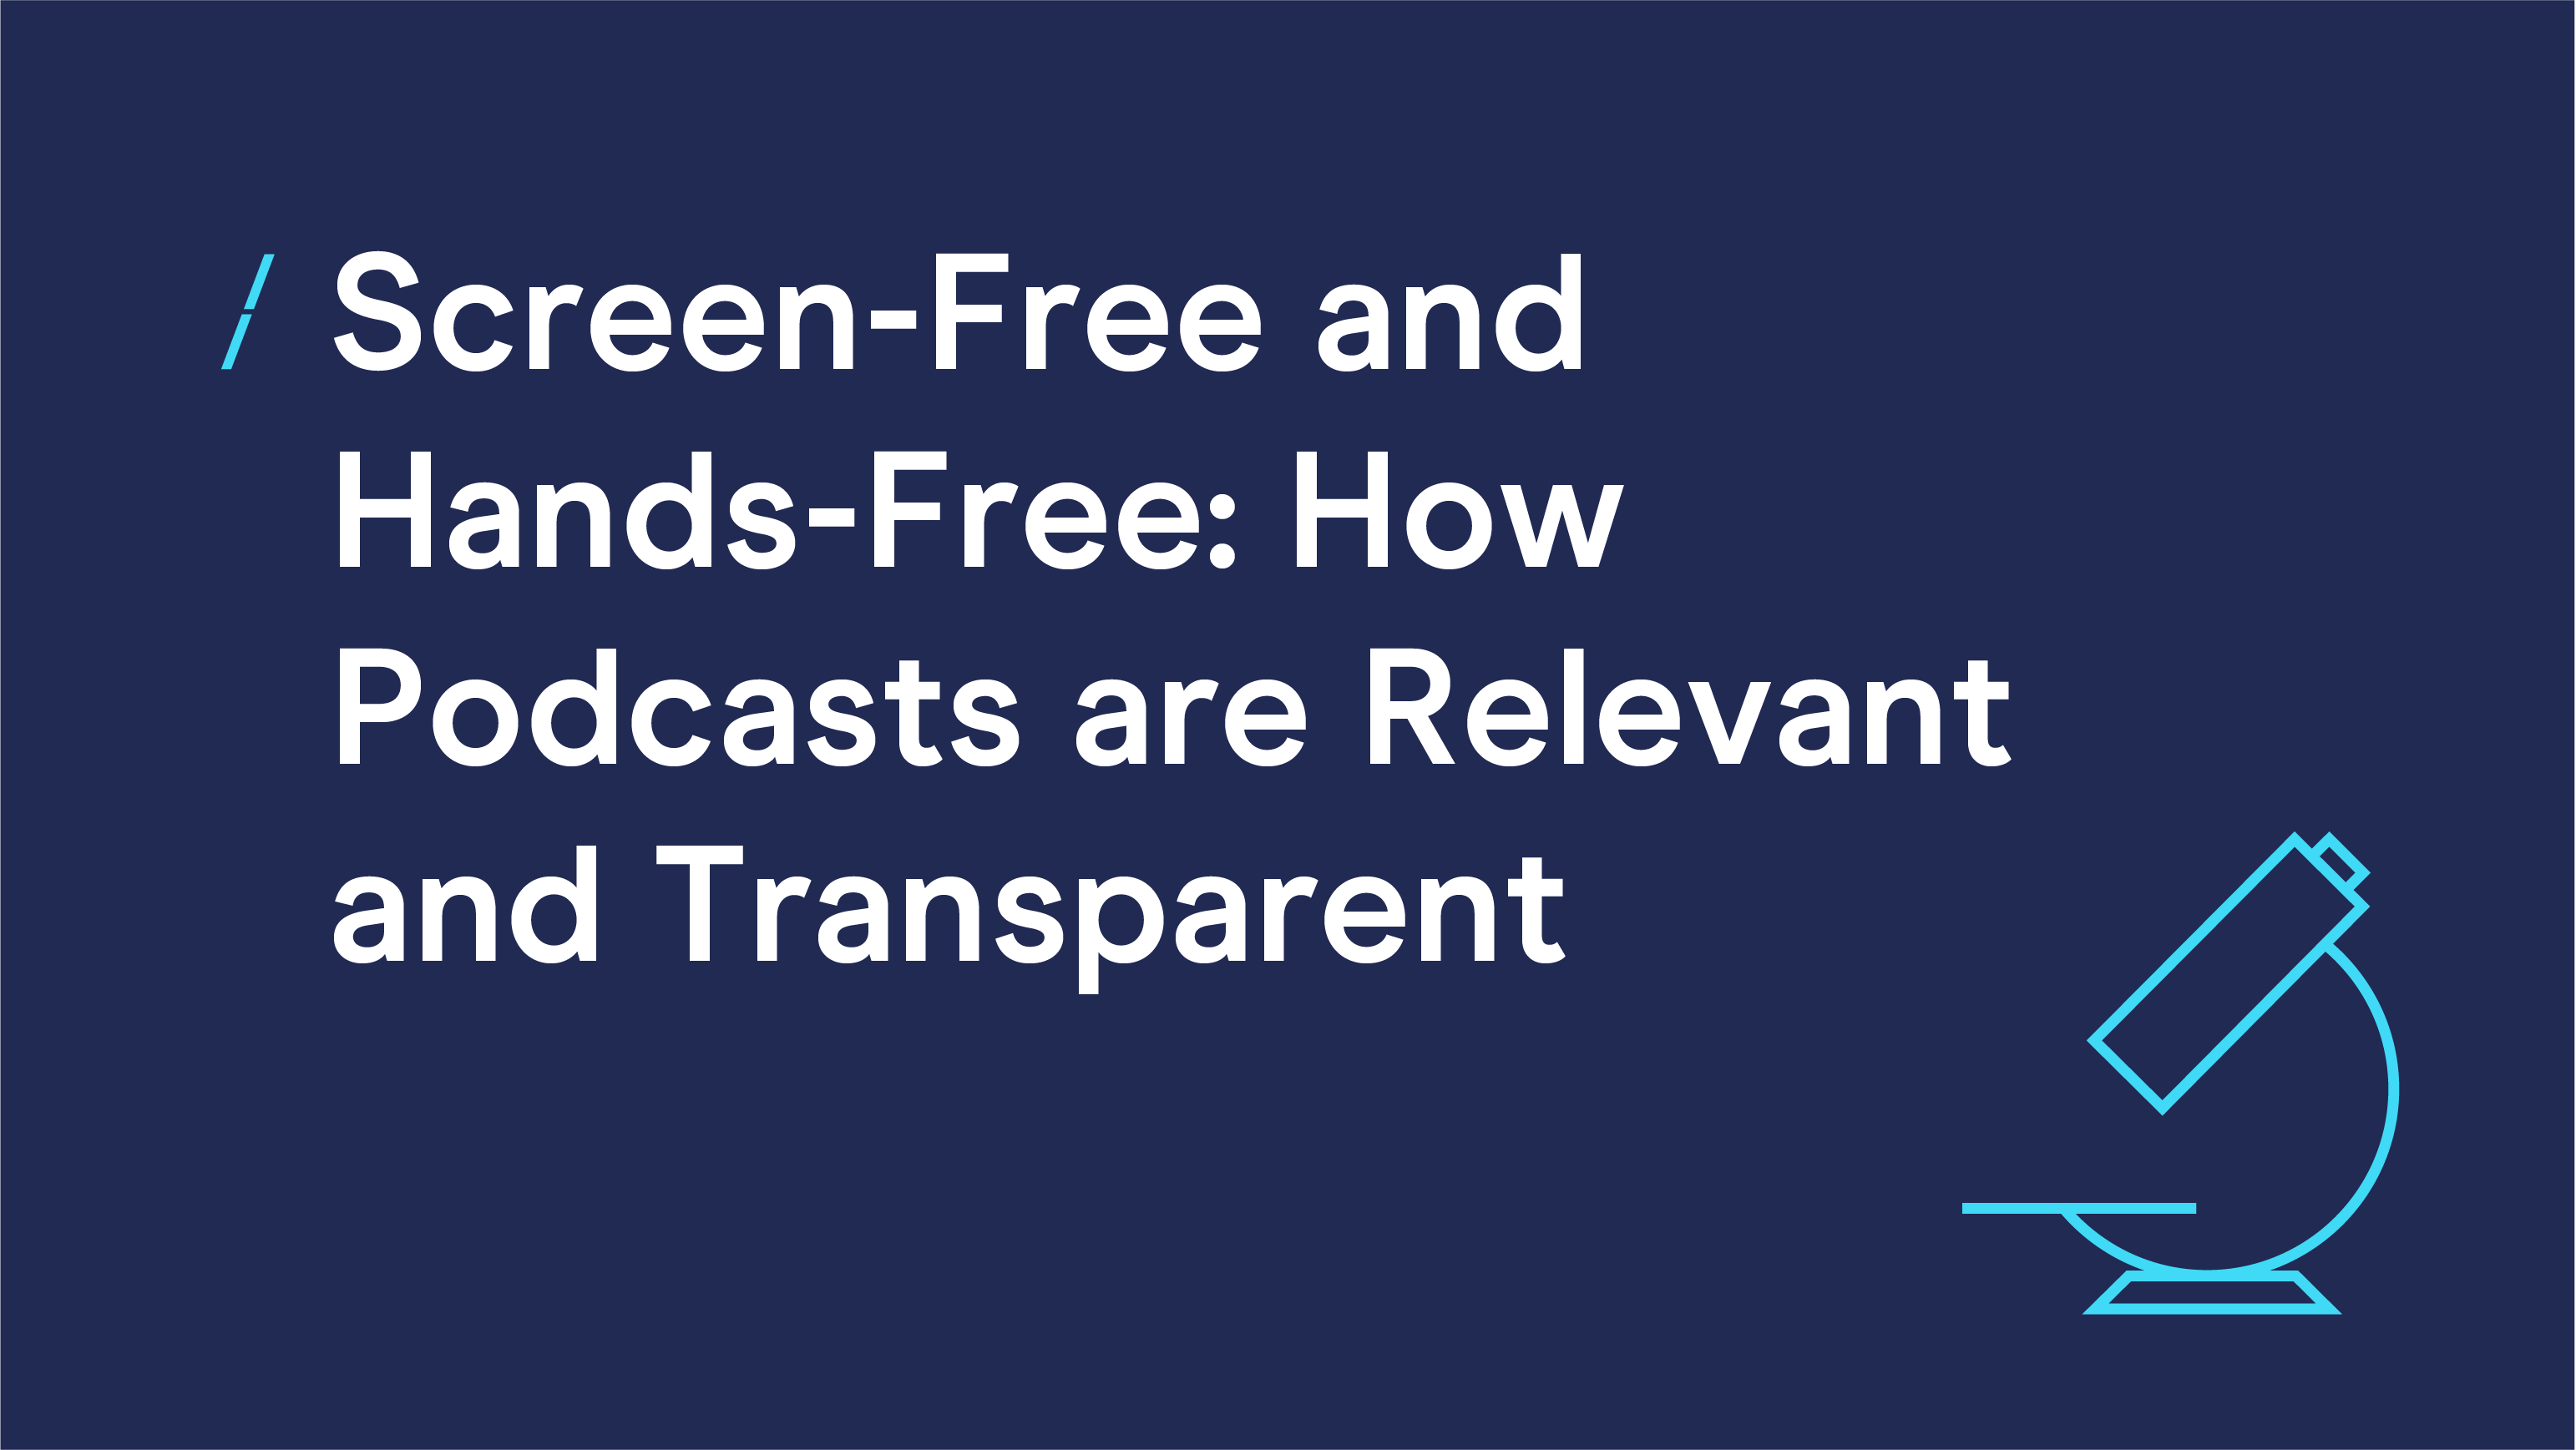 Screen-Free and Hands-Free- How Podcasts are Relevant and Transparent-03.png